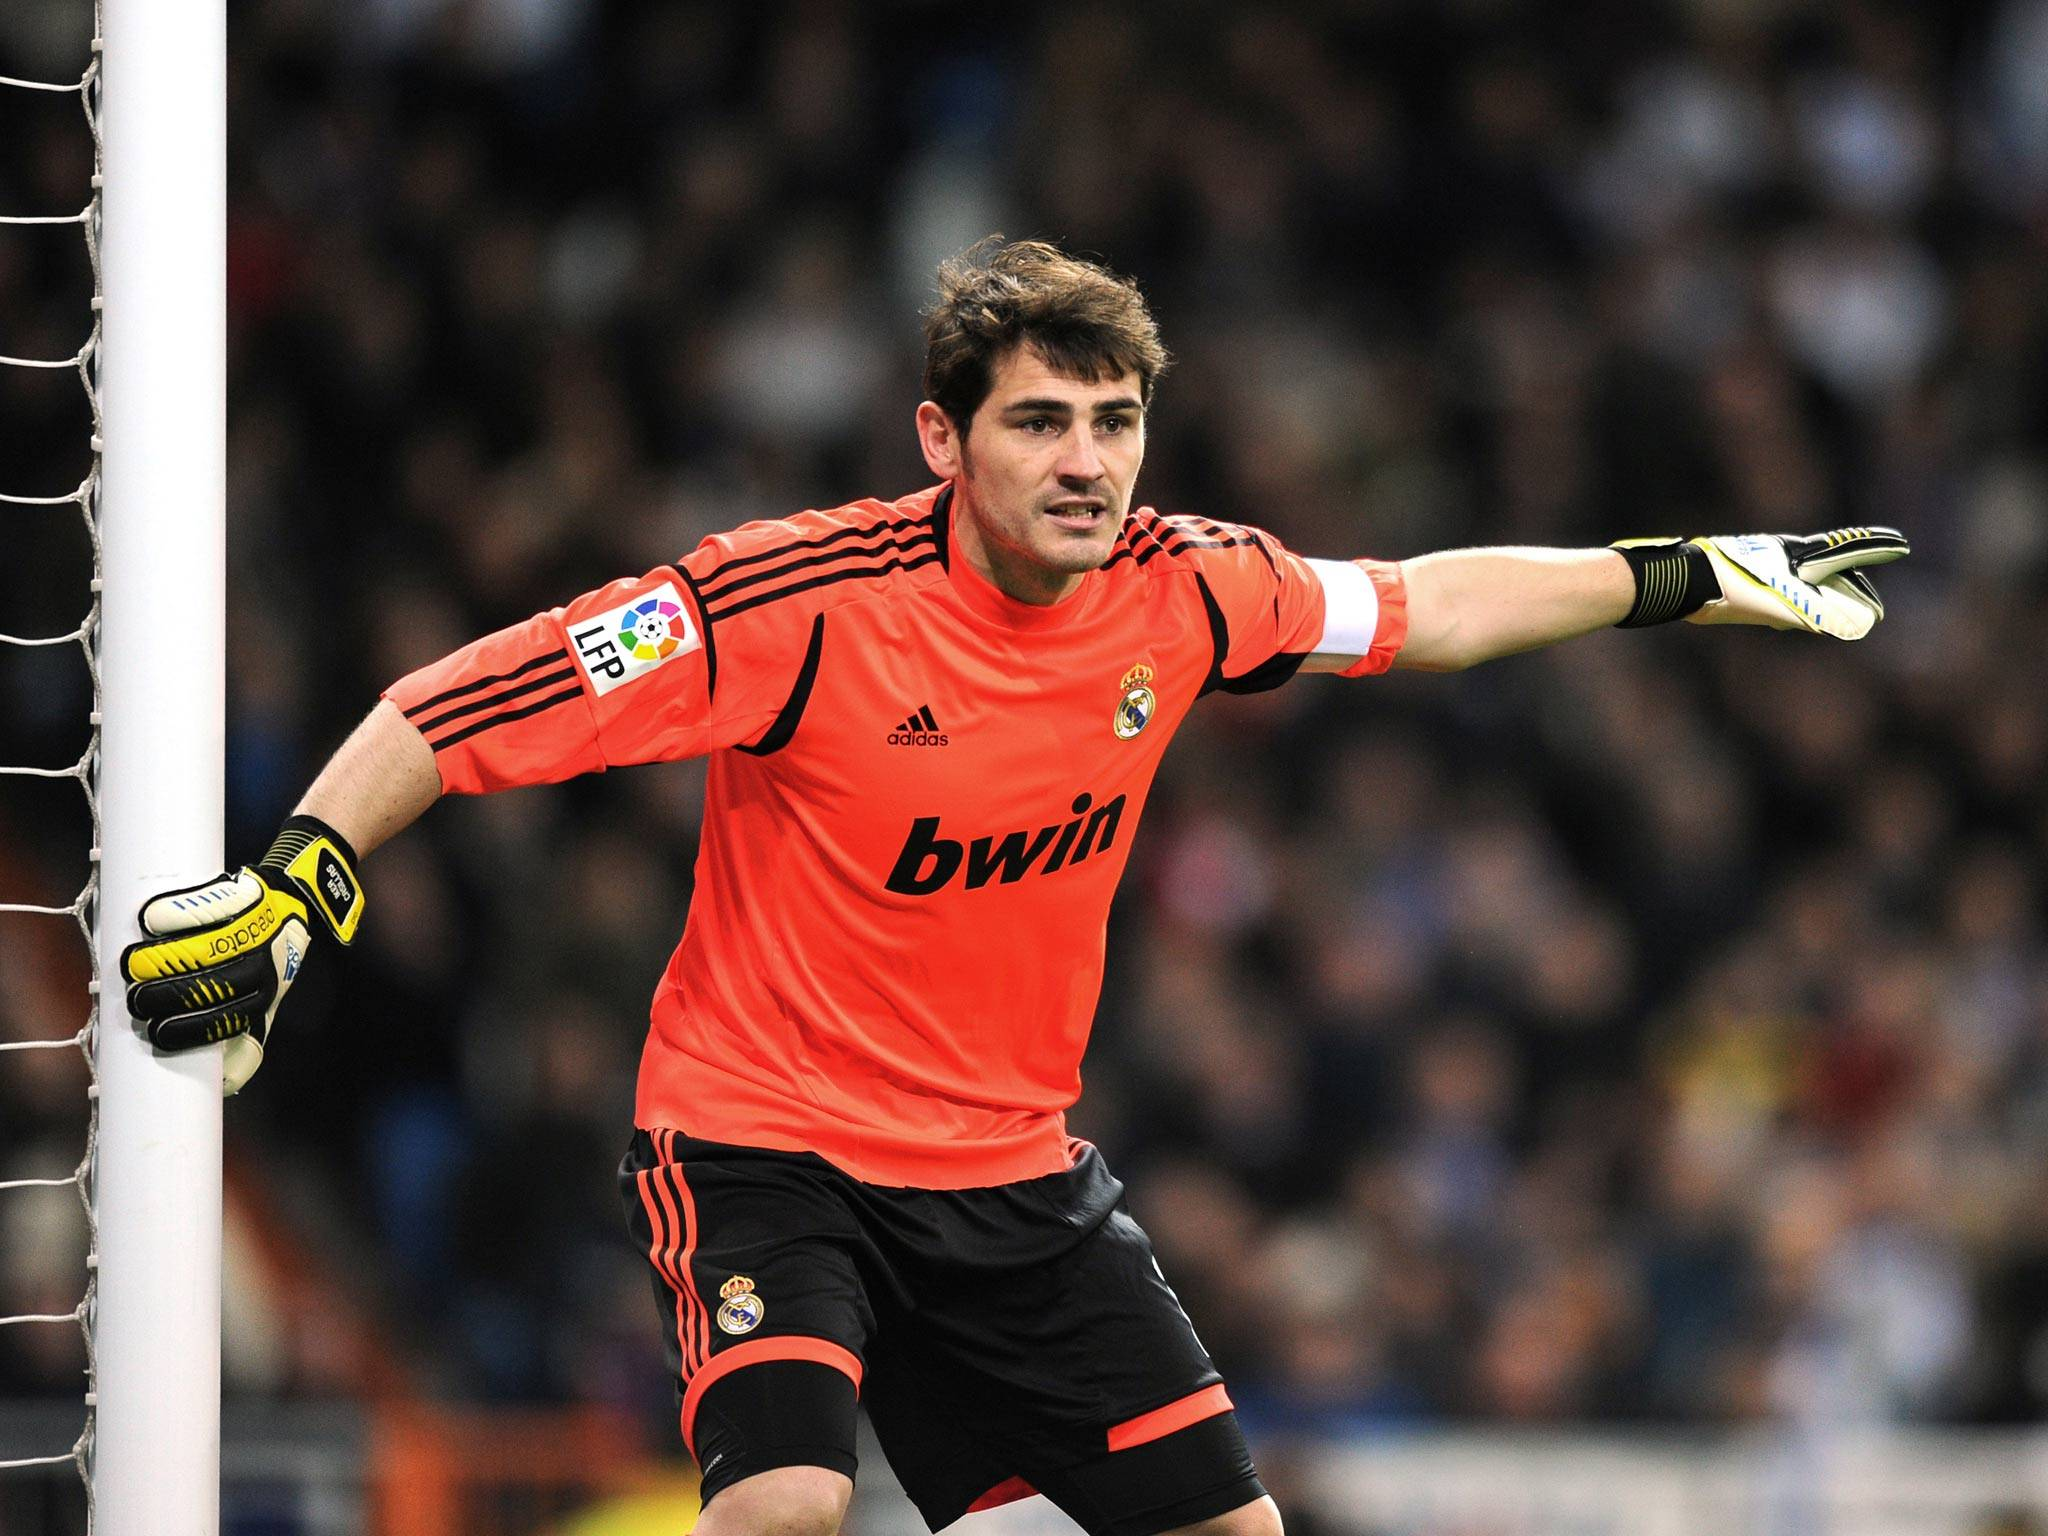 ... Iker Casillas; Iker Casillas